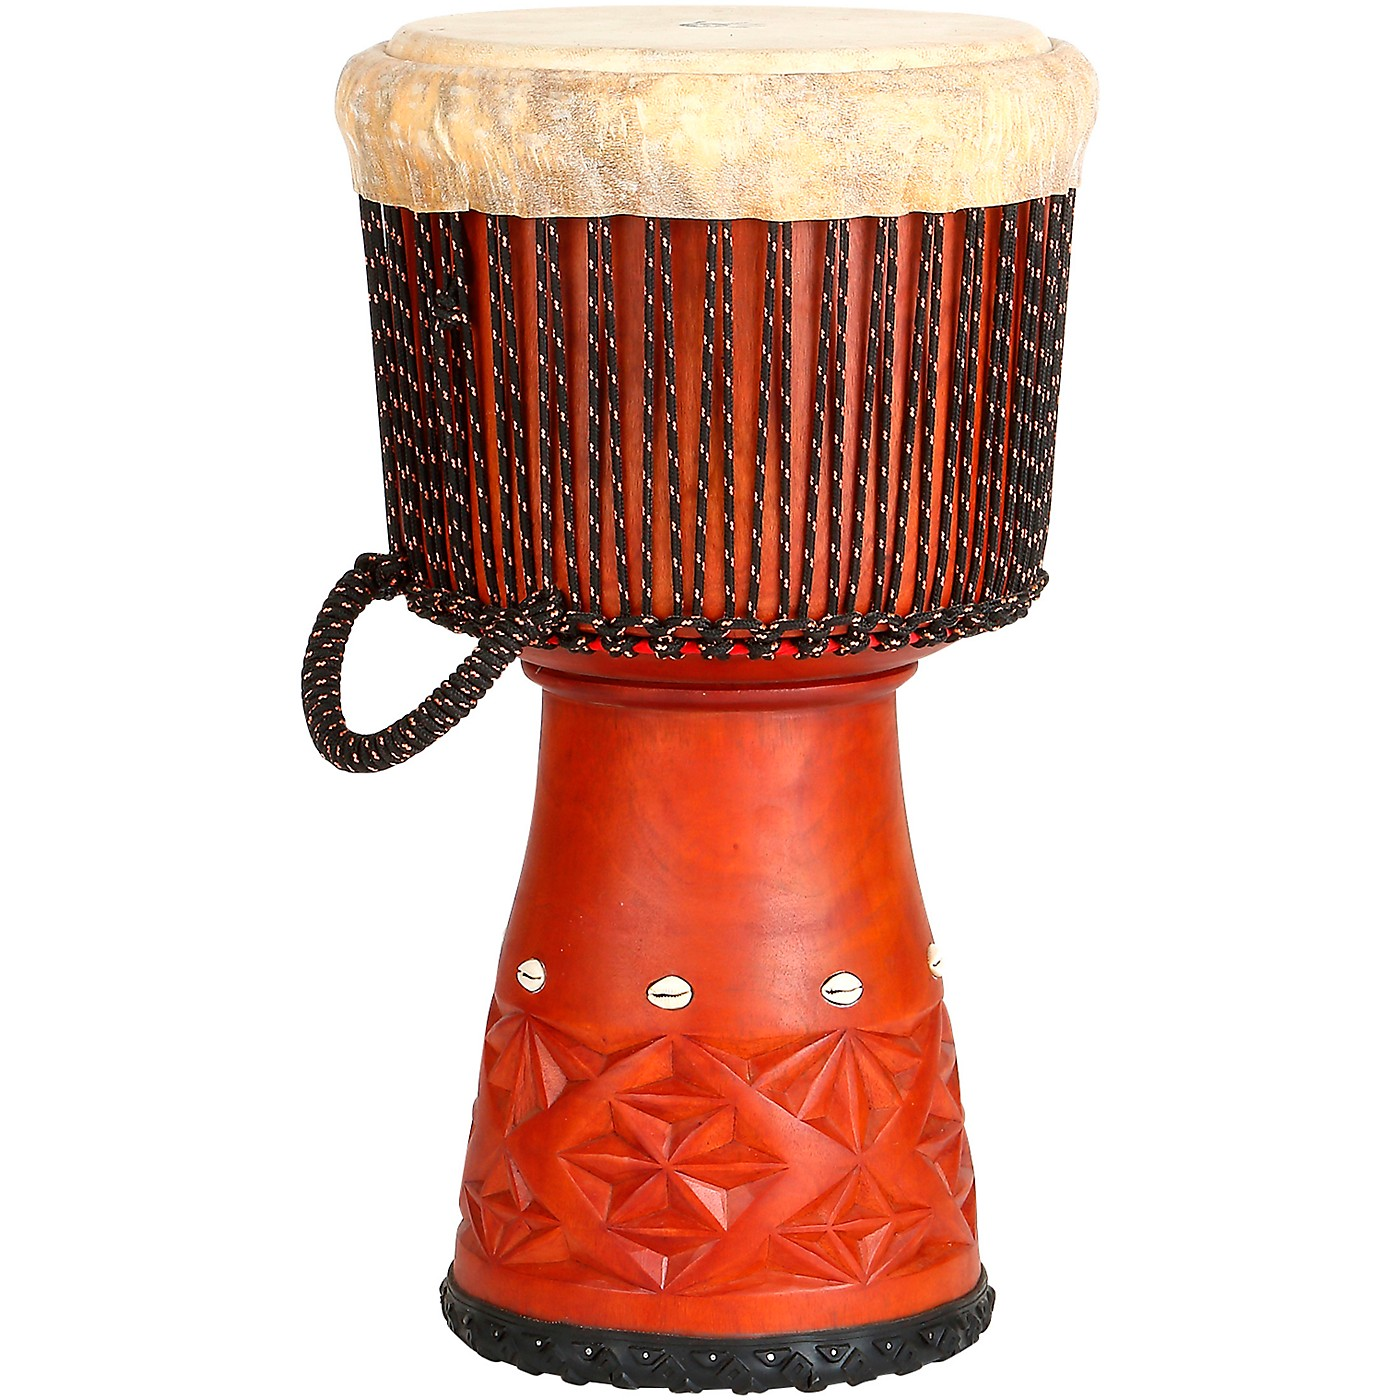 X8 Drums Seaside Master Series Djembe thumbnail